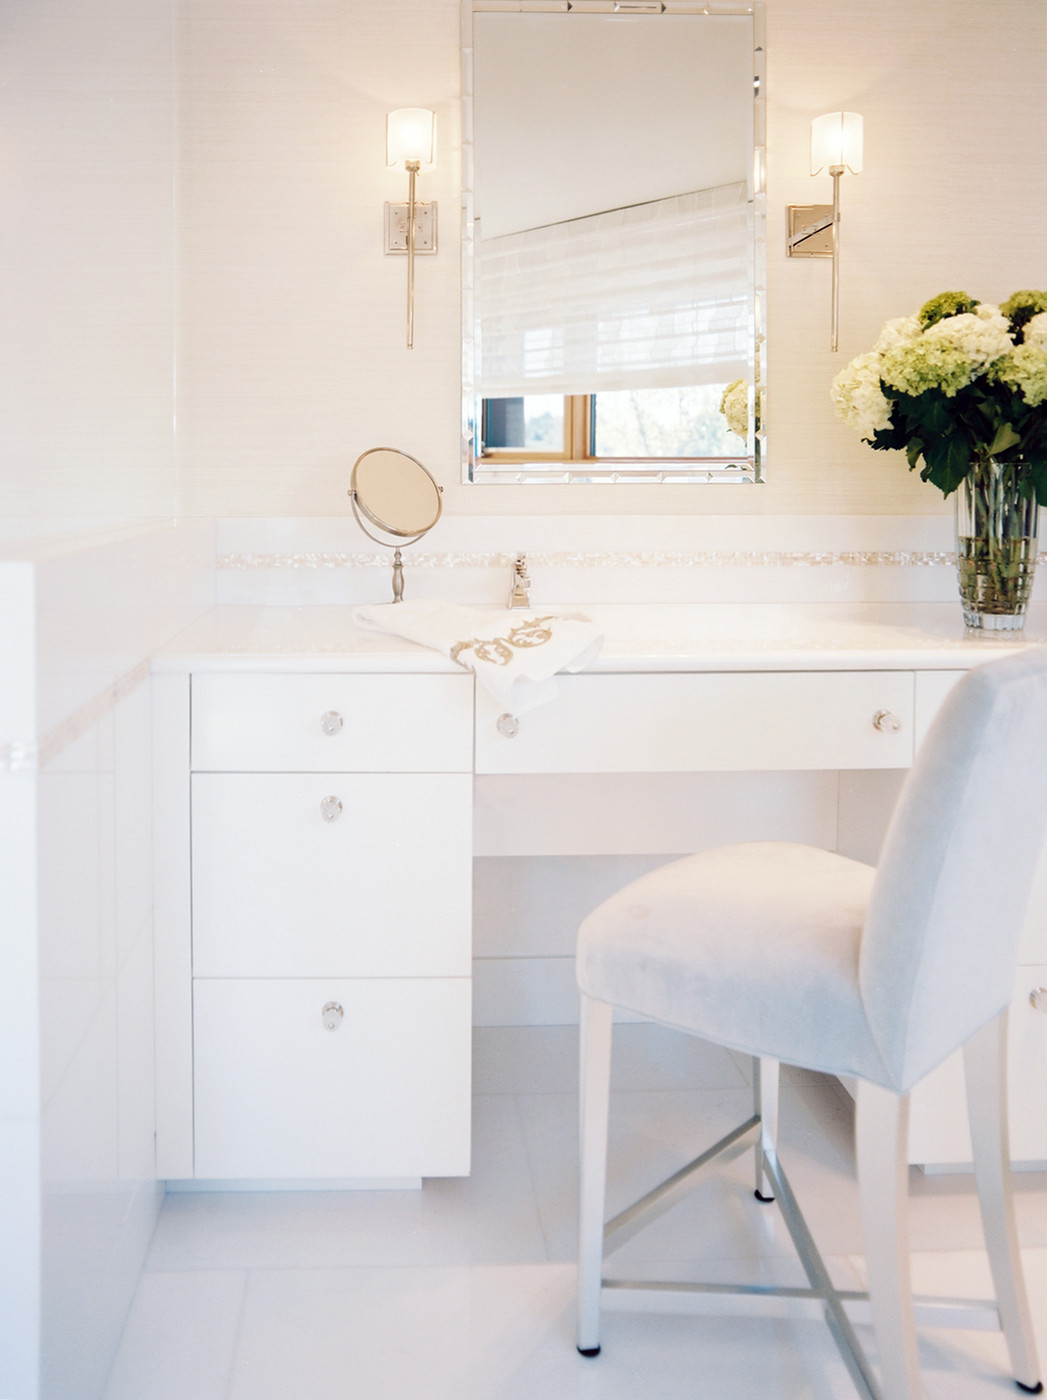 Bathroom vanity with comfy seating